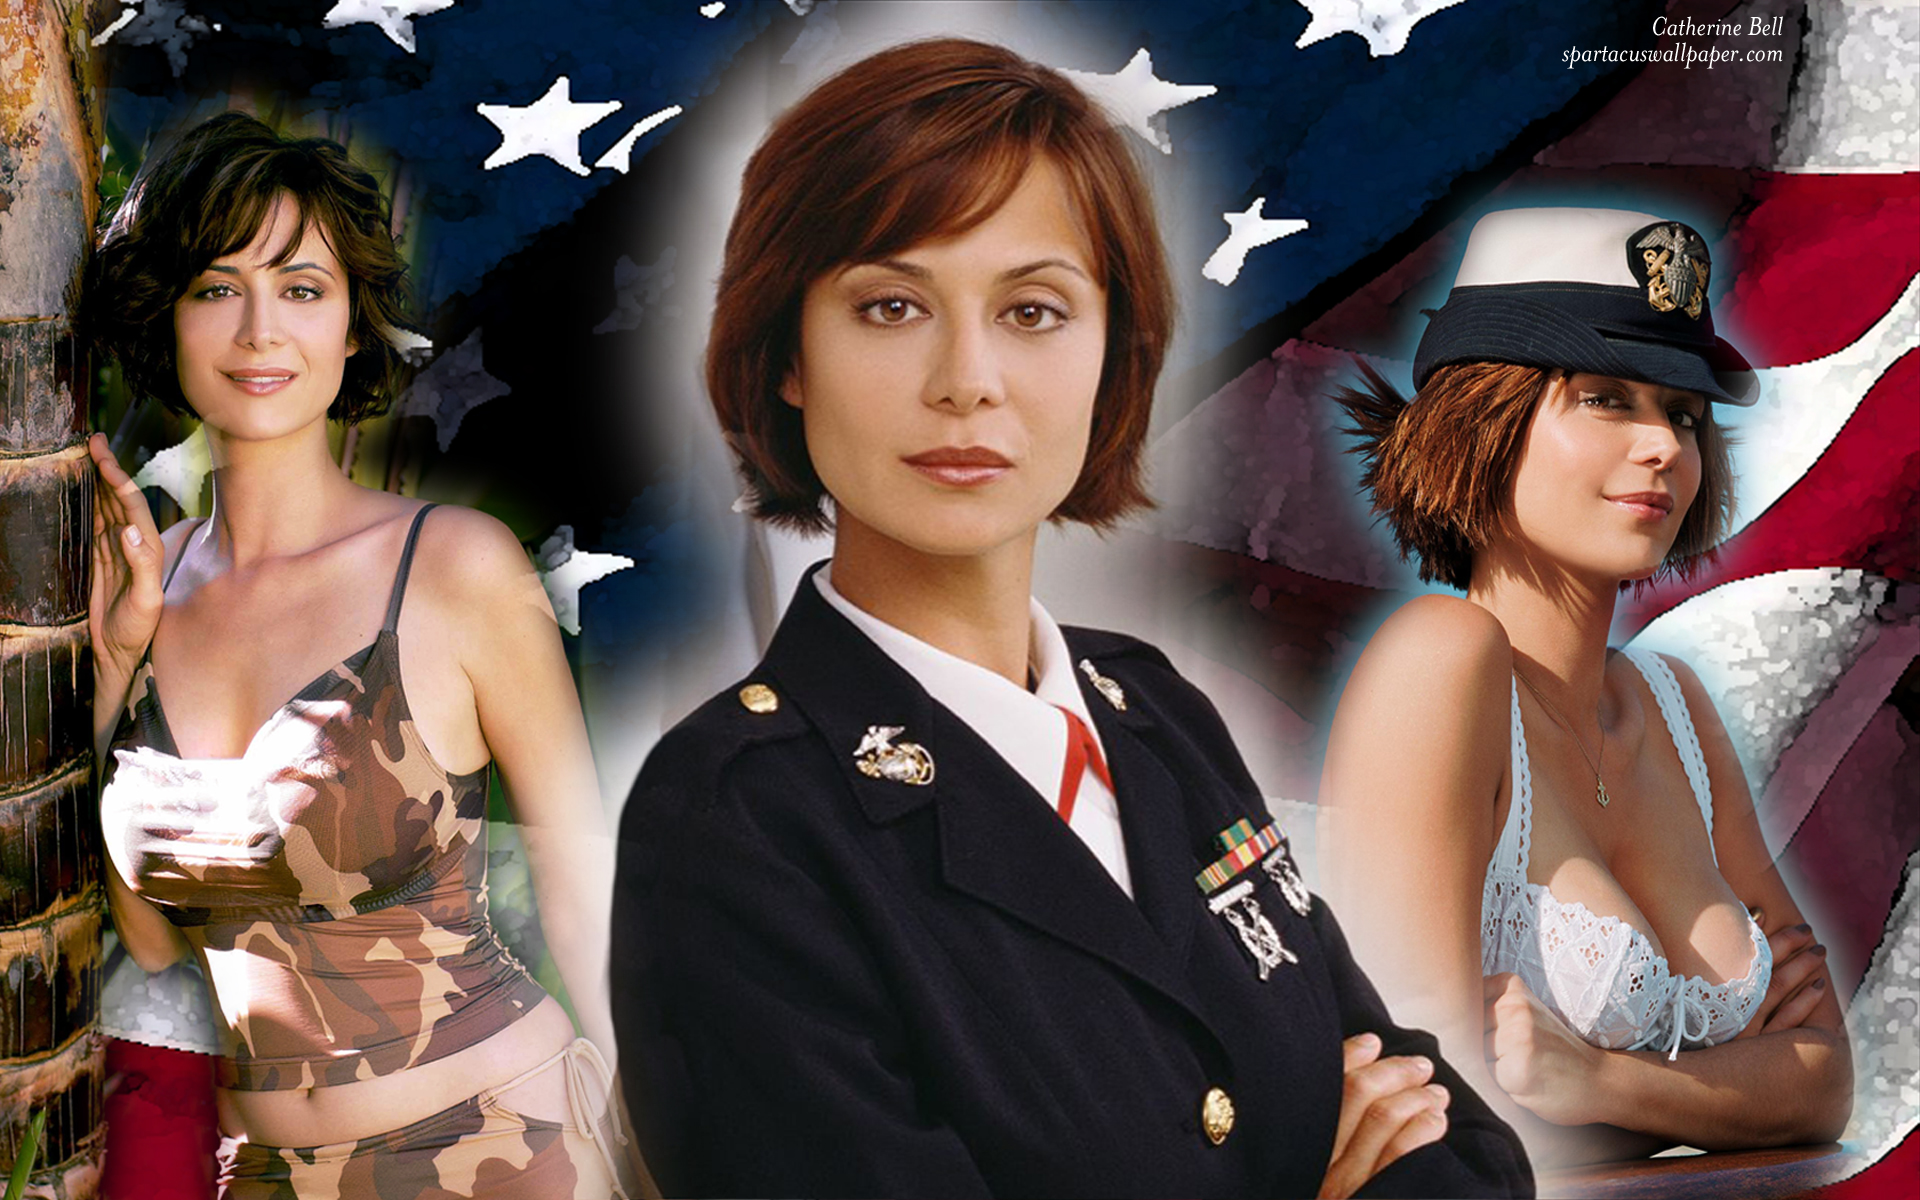 1920x1200 - Catherine Bell Wallpapers 21